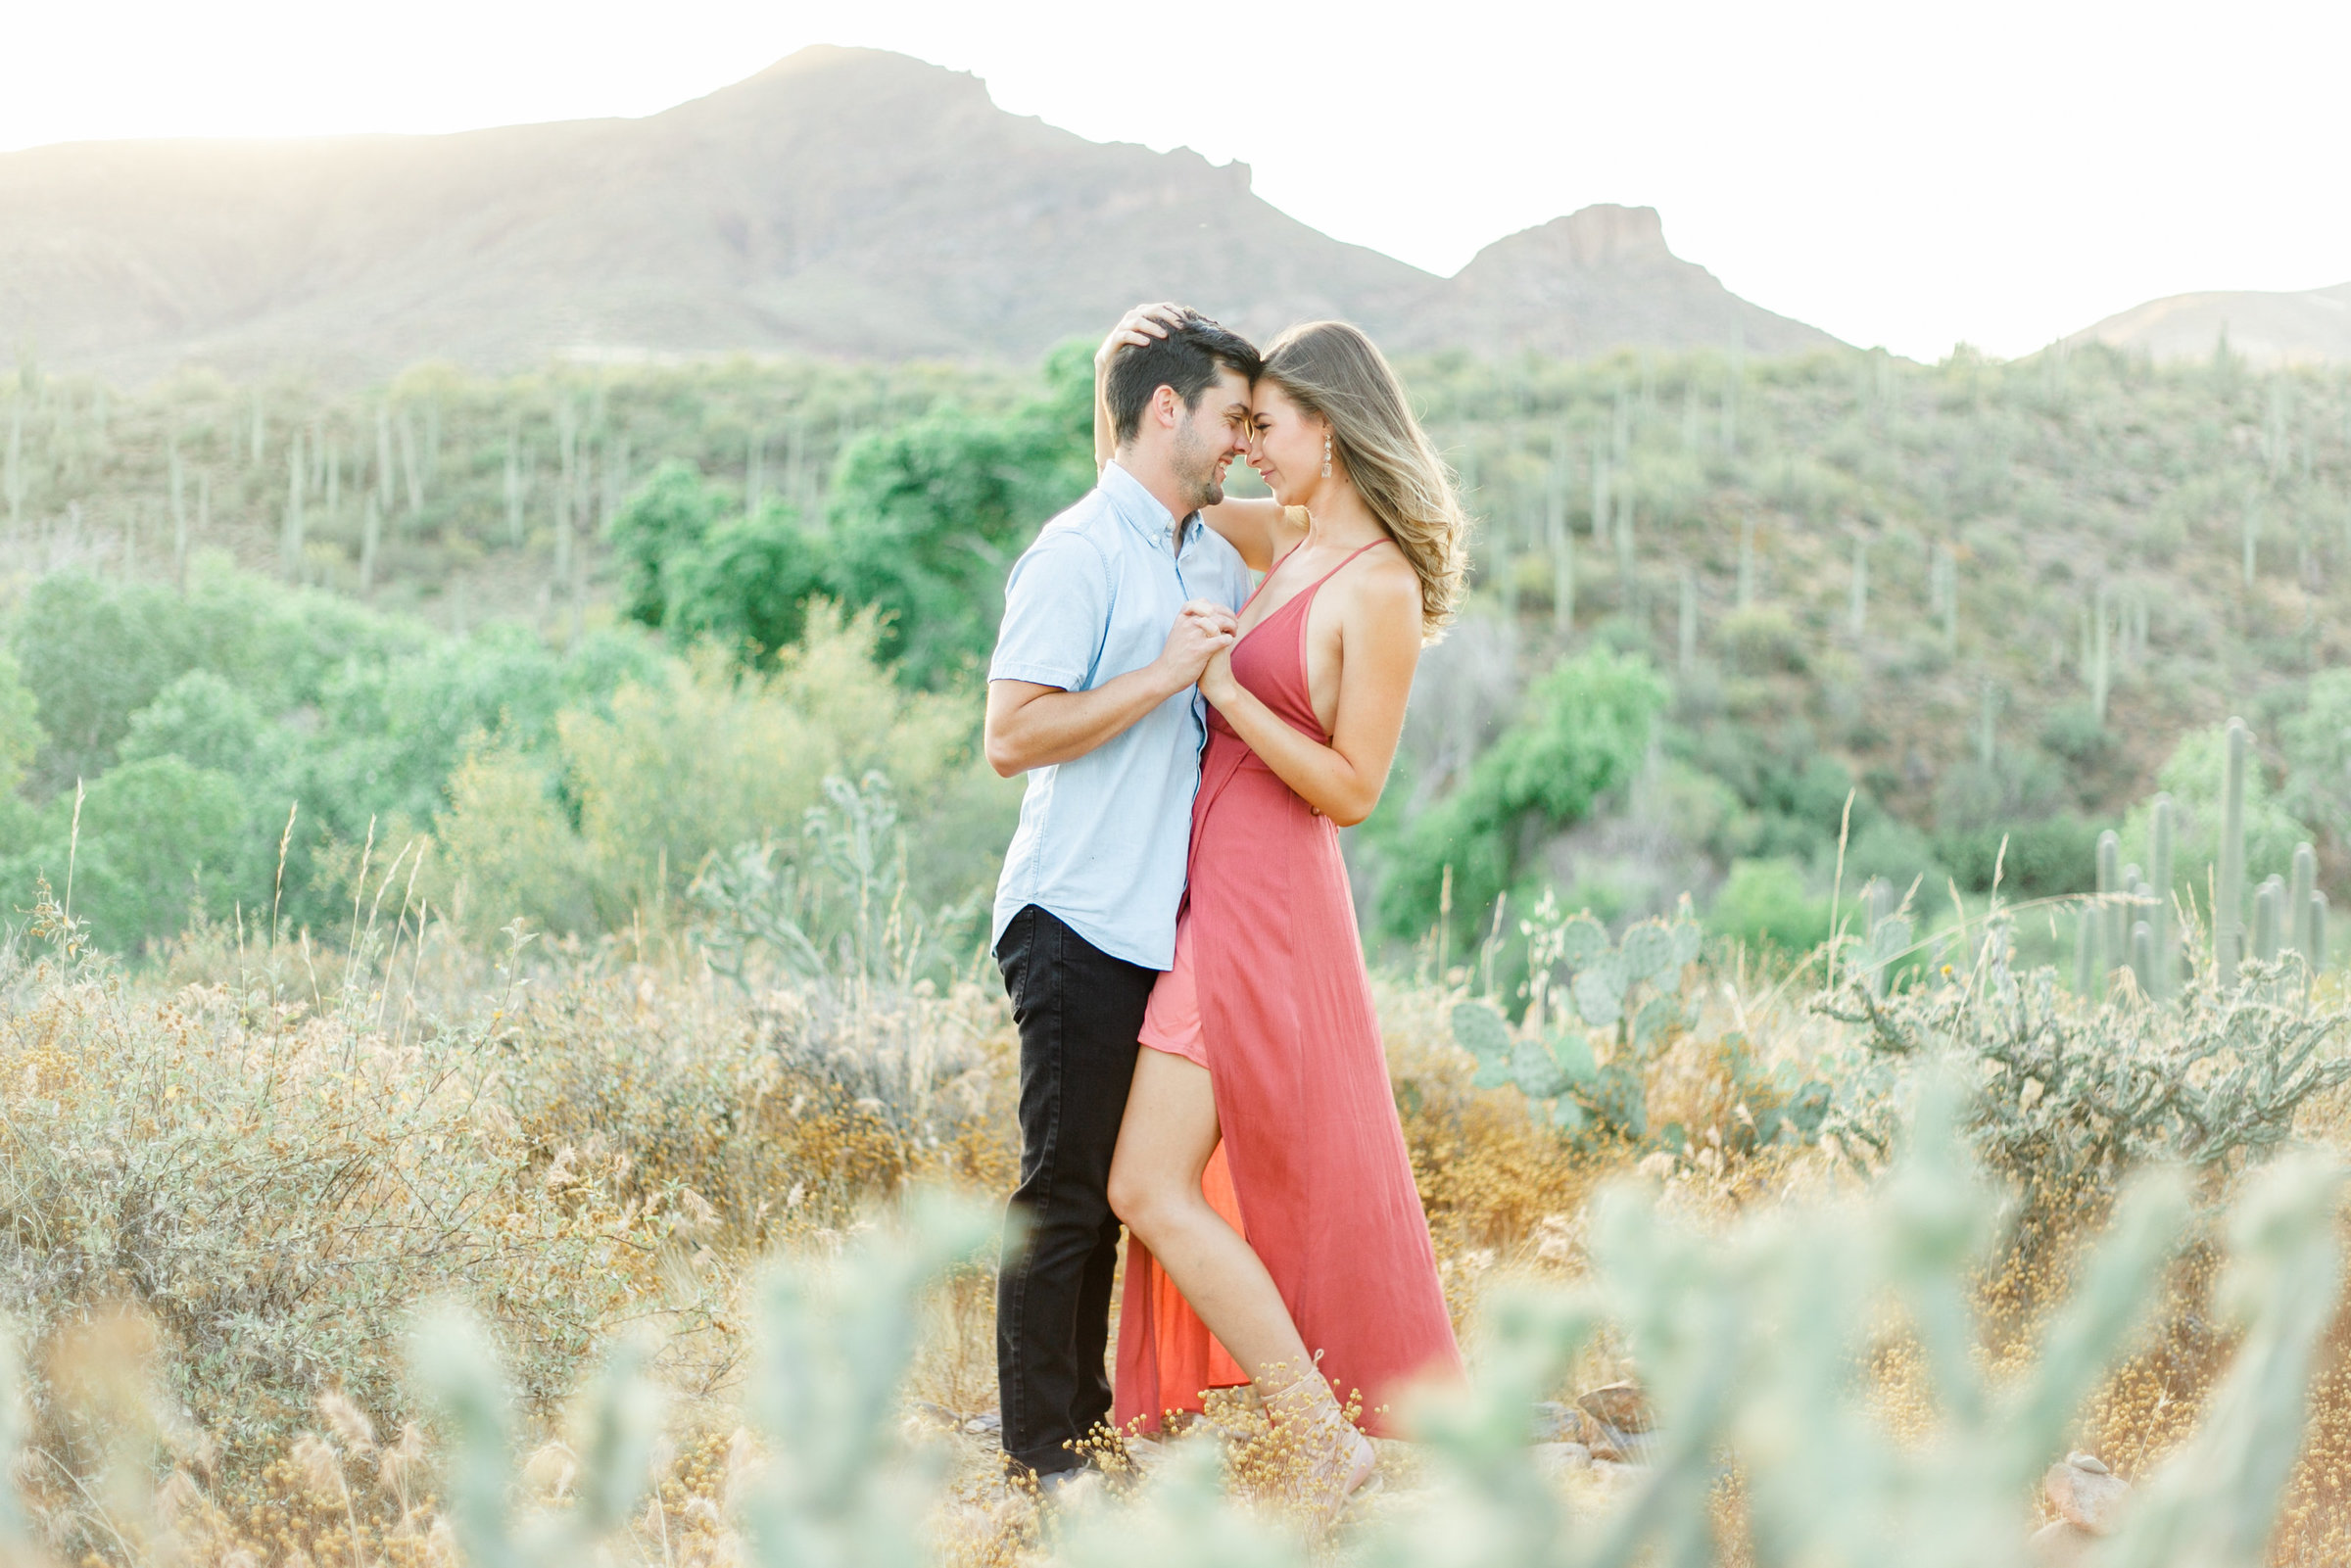 Karlie Colleen Photography - Arizona Desert Engagement - Brynne & Josh -164